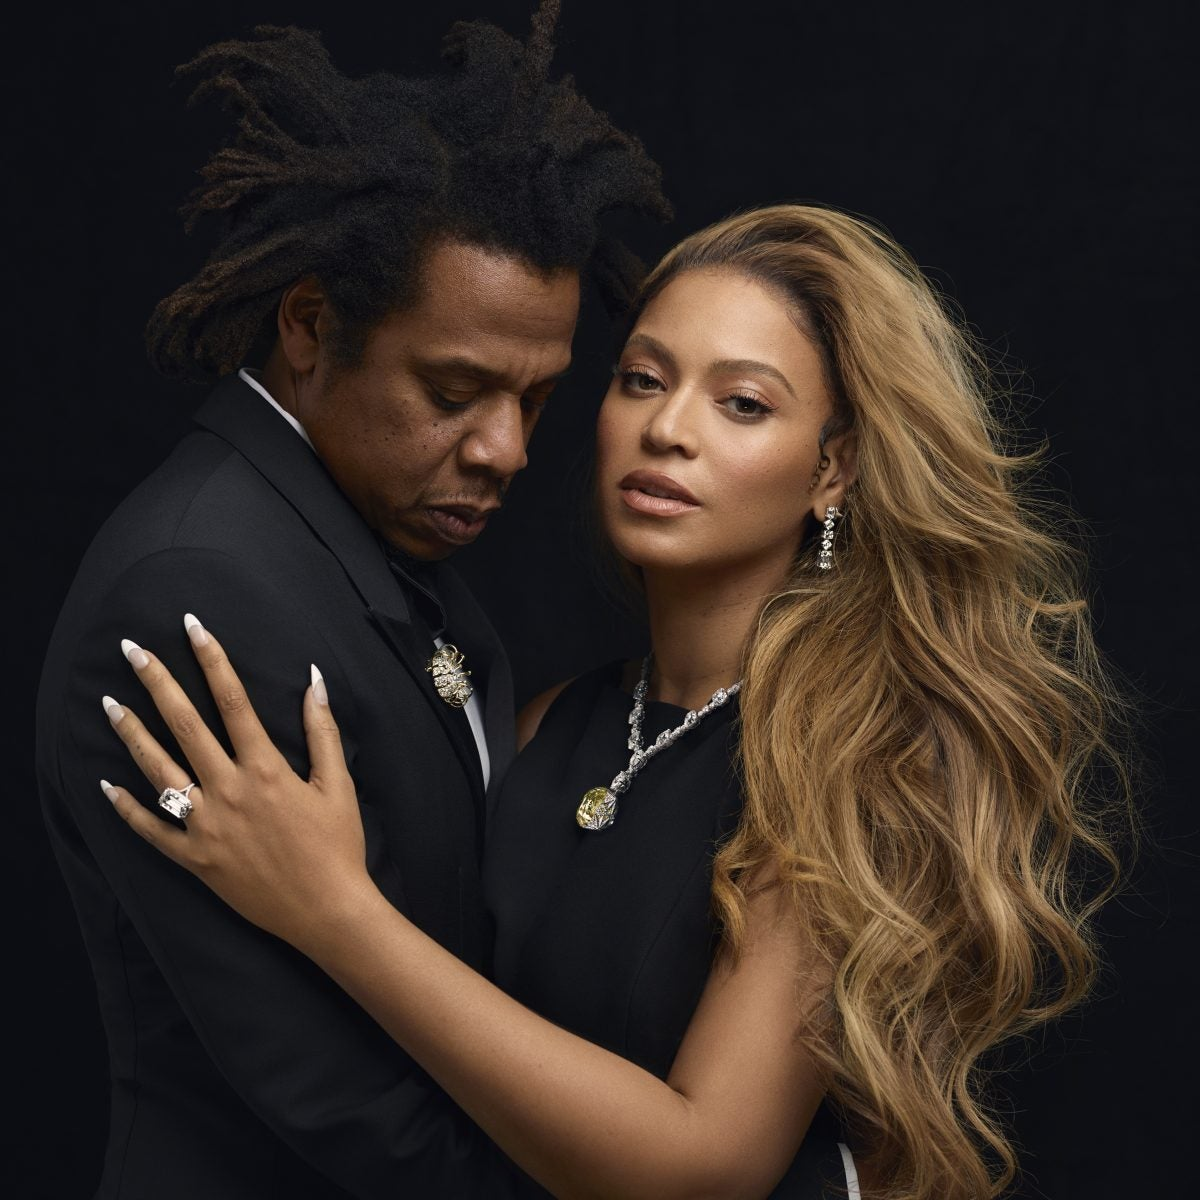 """EXCLUSIVE: Watch Beyoncé and Jay-Z's Sentimental """"About Love"""" Campaign Film for Tiffany & Co."""